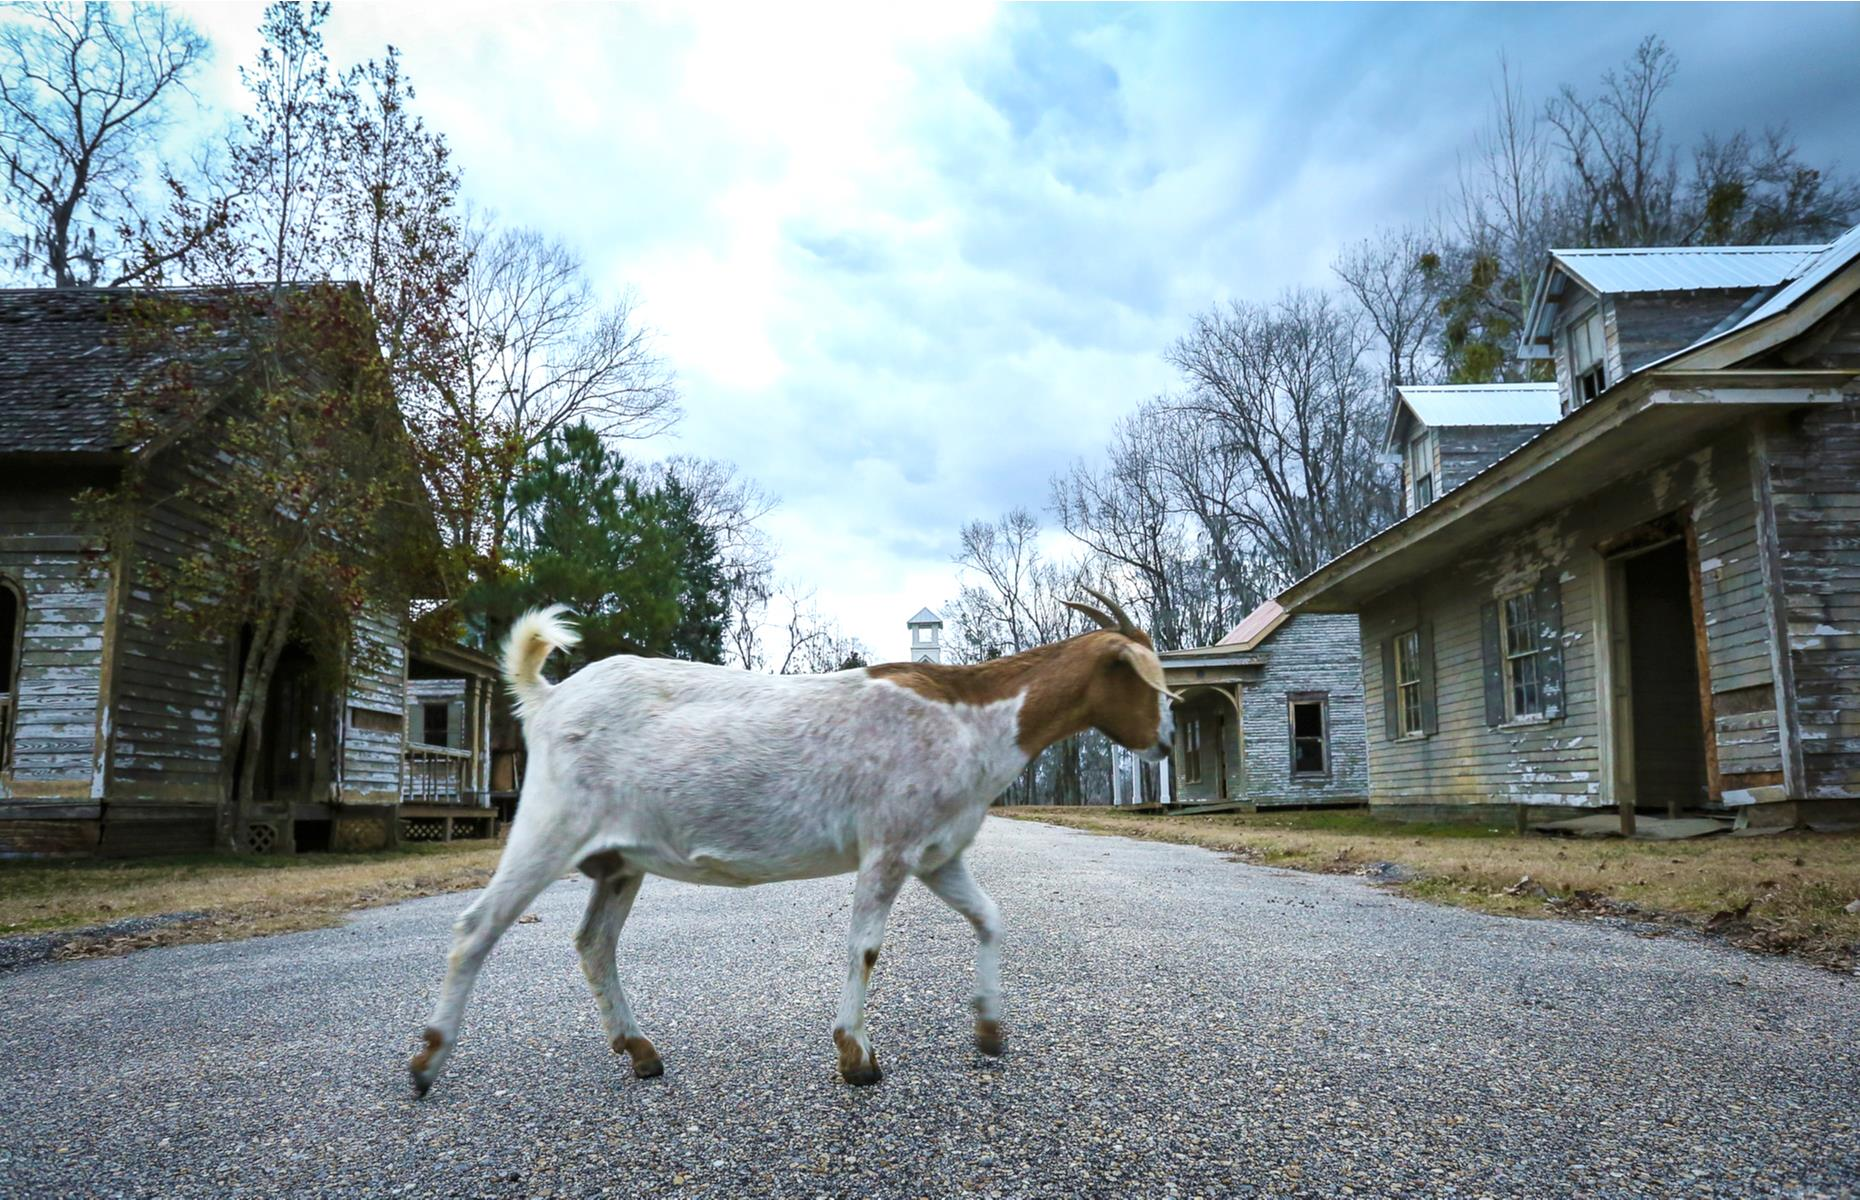 """Slide 9 of 64: Once filming was finished the movie set was left behind, and today rickety houses sit among the woodland, which includes a pair of styrofoam trees that were part of the film's own """"enchanted forest"""". You'll also see free-roaming goats – the town's only residents – wandering about the place."""